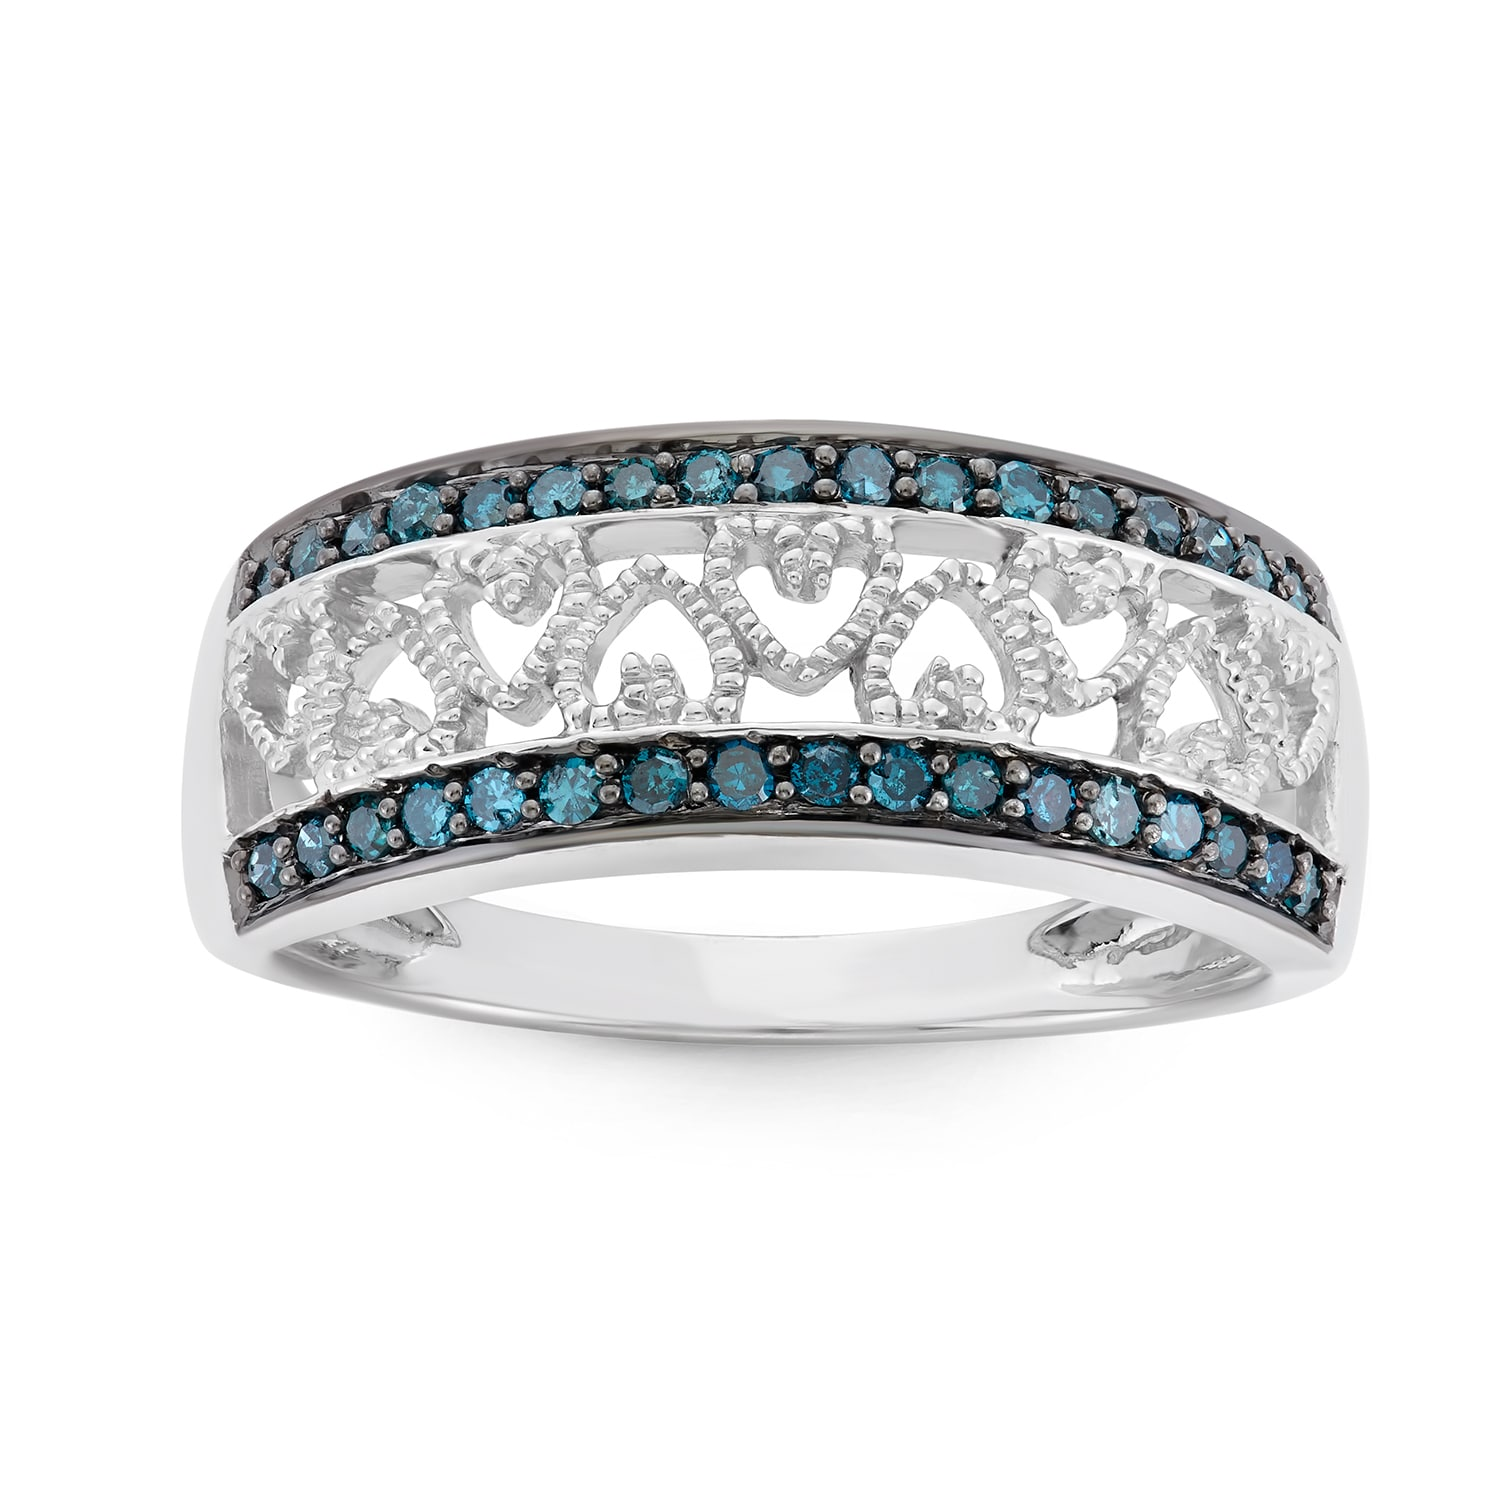 Hetal Diamonds Inc Rhodium-plated Sterling Silver 1/4ct TDW Blue Diamond Heart Ring